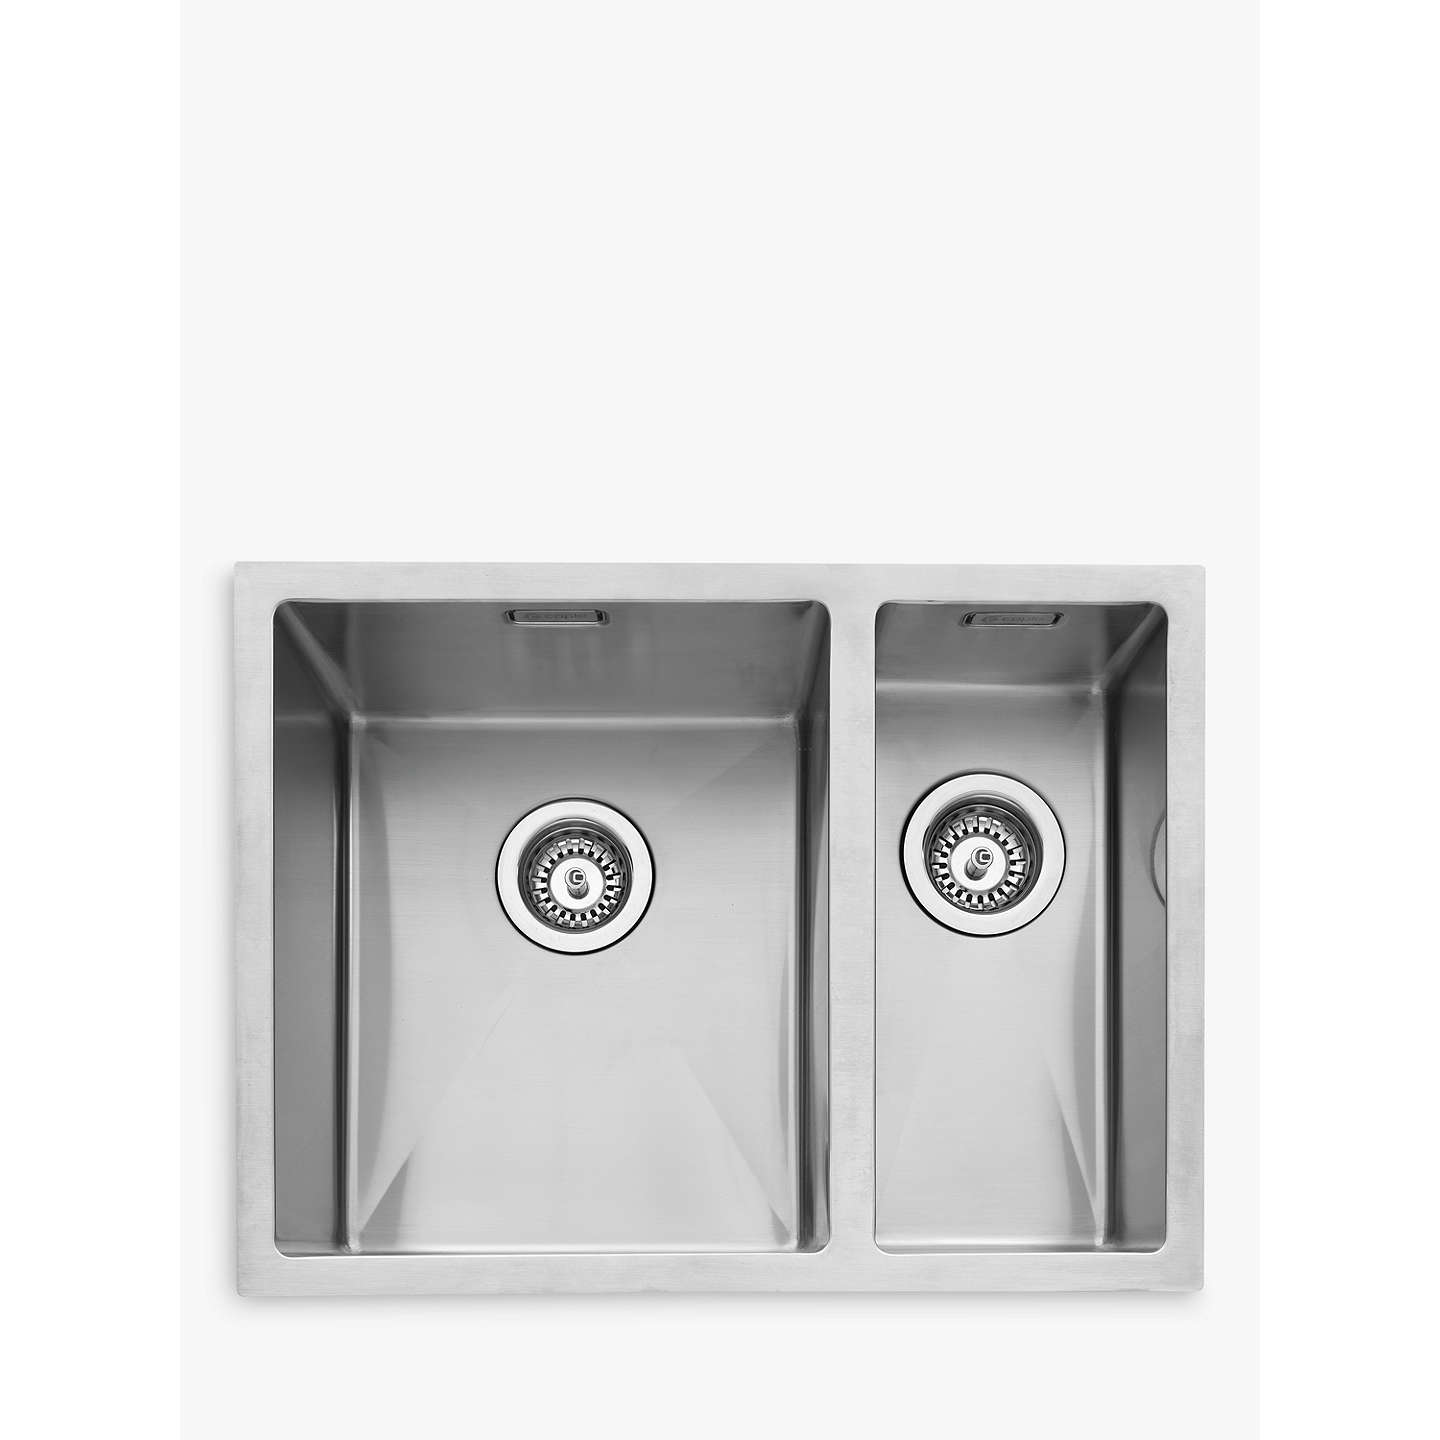 larger kitchen sinks view inundermount lowe steel kindred undermount s drop stainless canada sink in